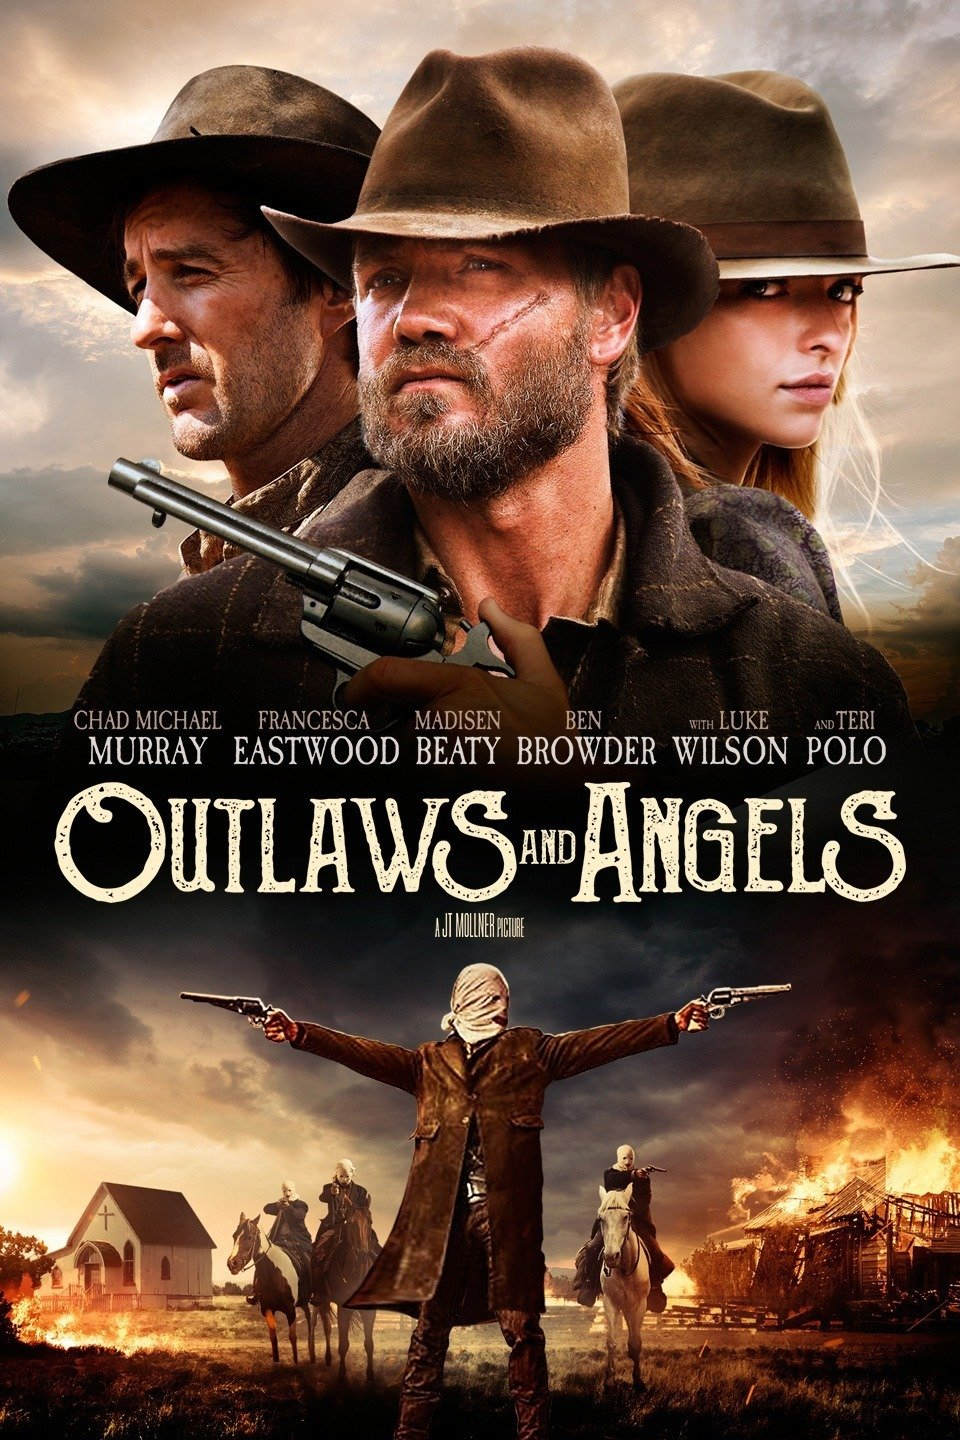 Outlaws and Angels-Outlaws and Angels